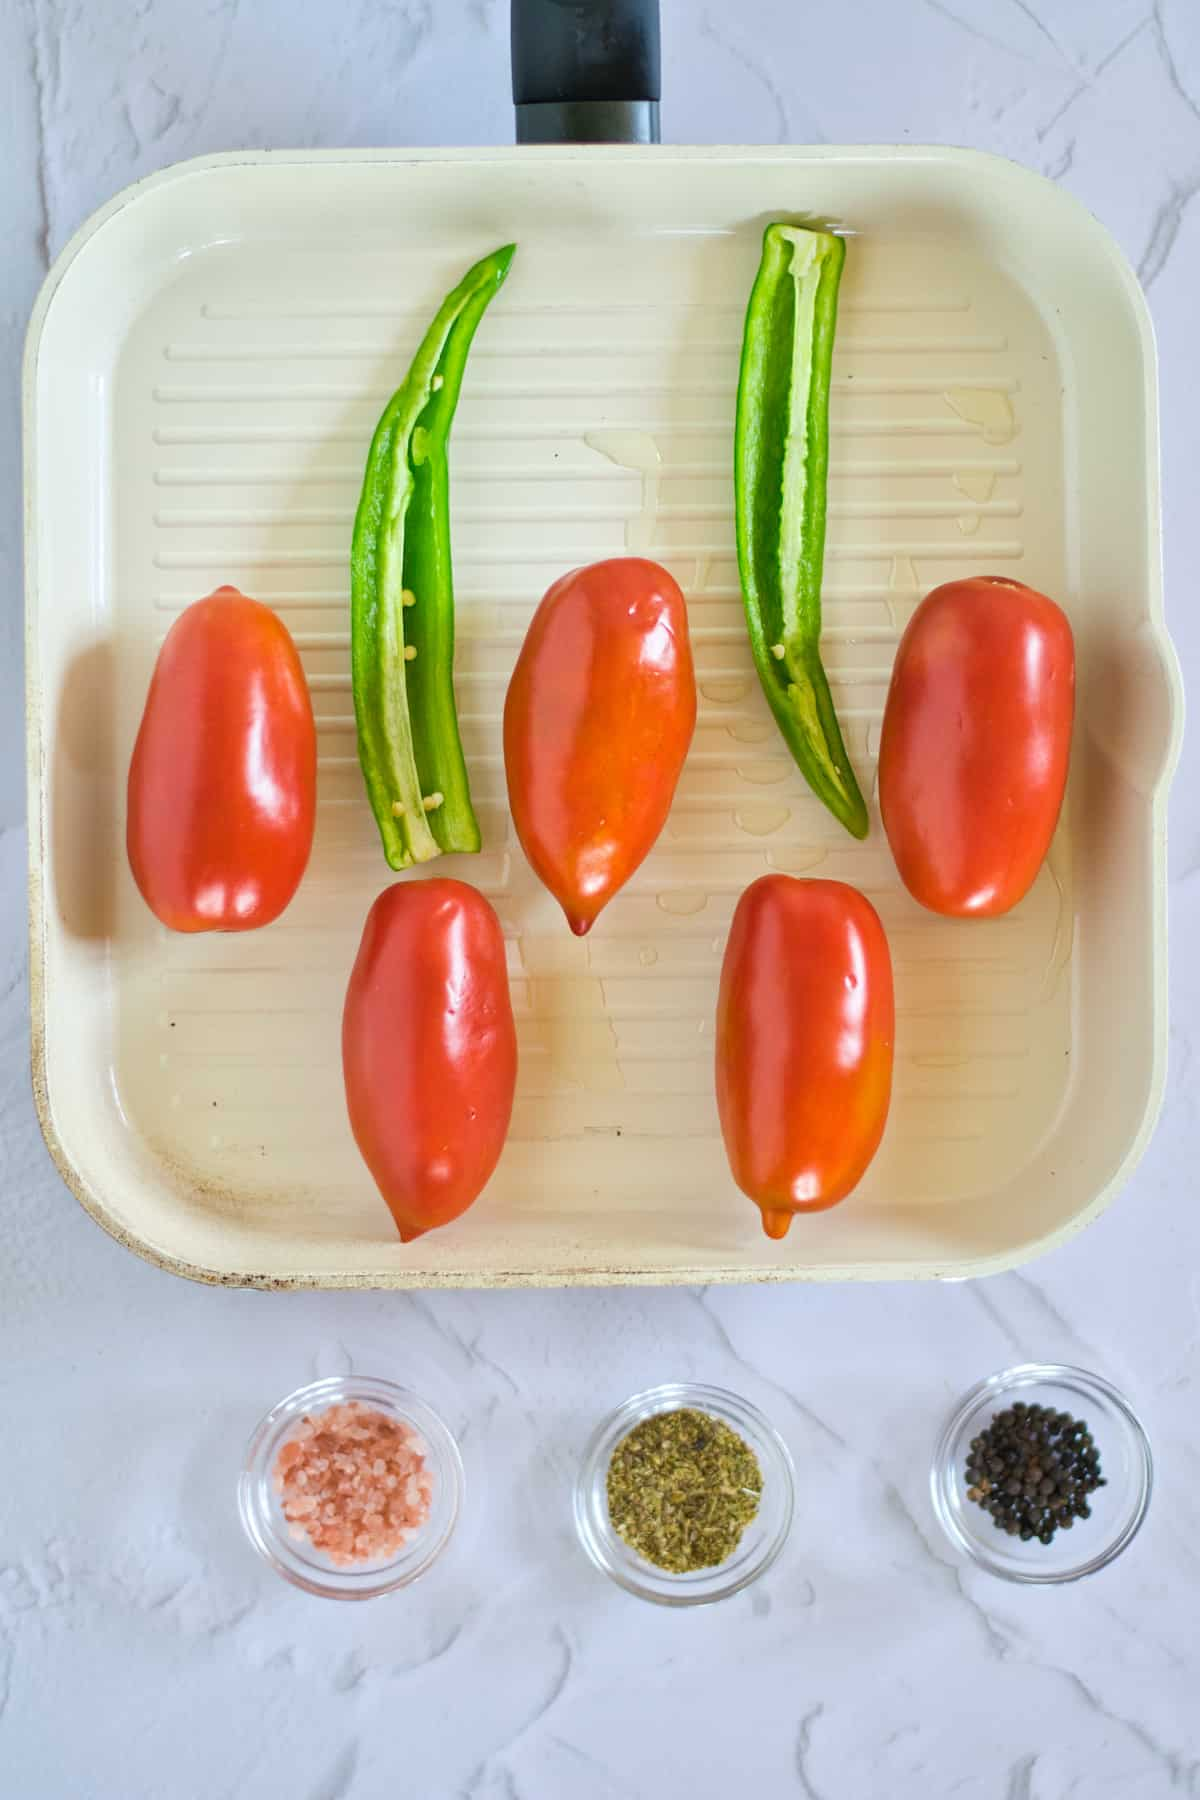 Tomatoes and Serrano peppers in pan with olive oil.